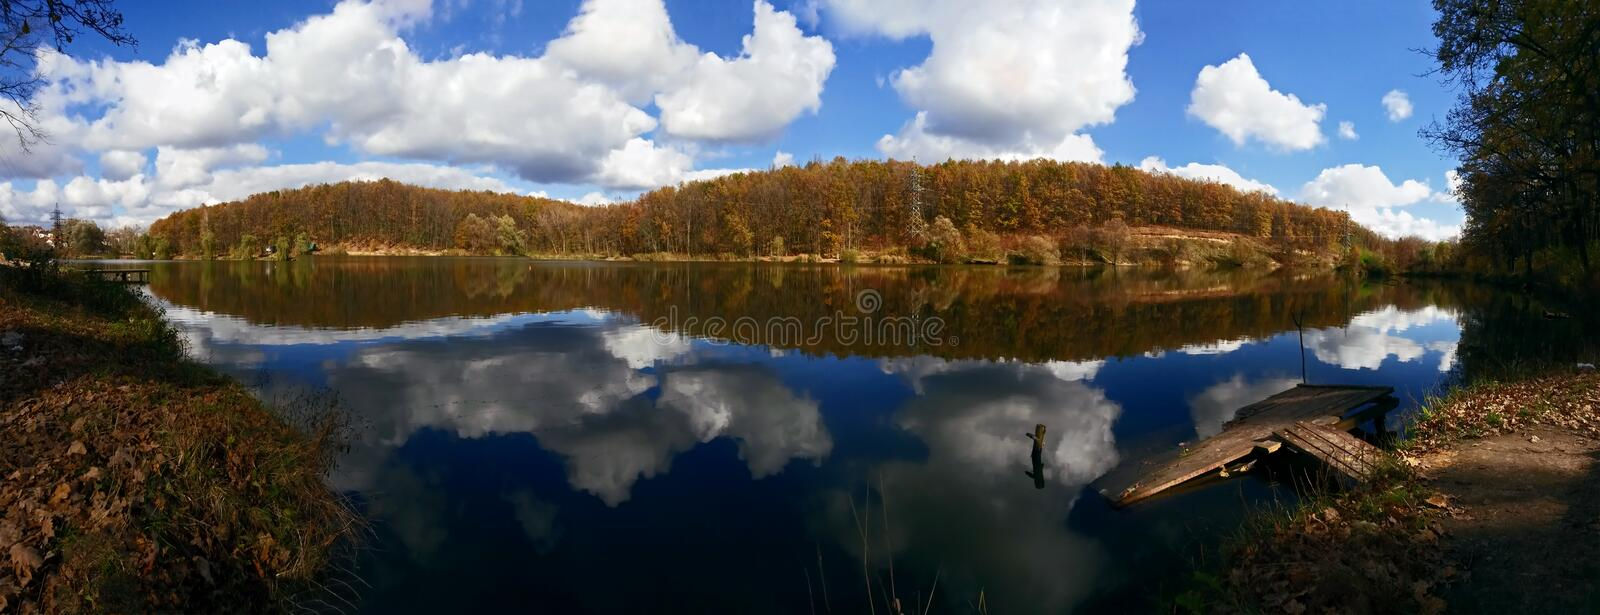 Panorama of lake in the autumn forest royalty free stock images